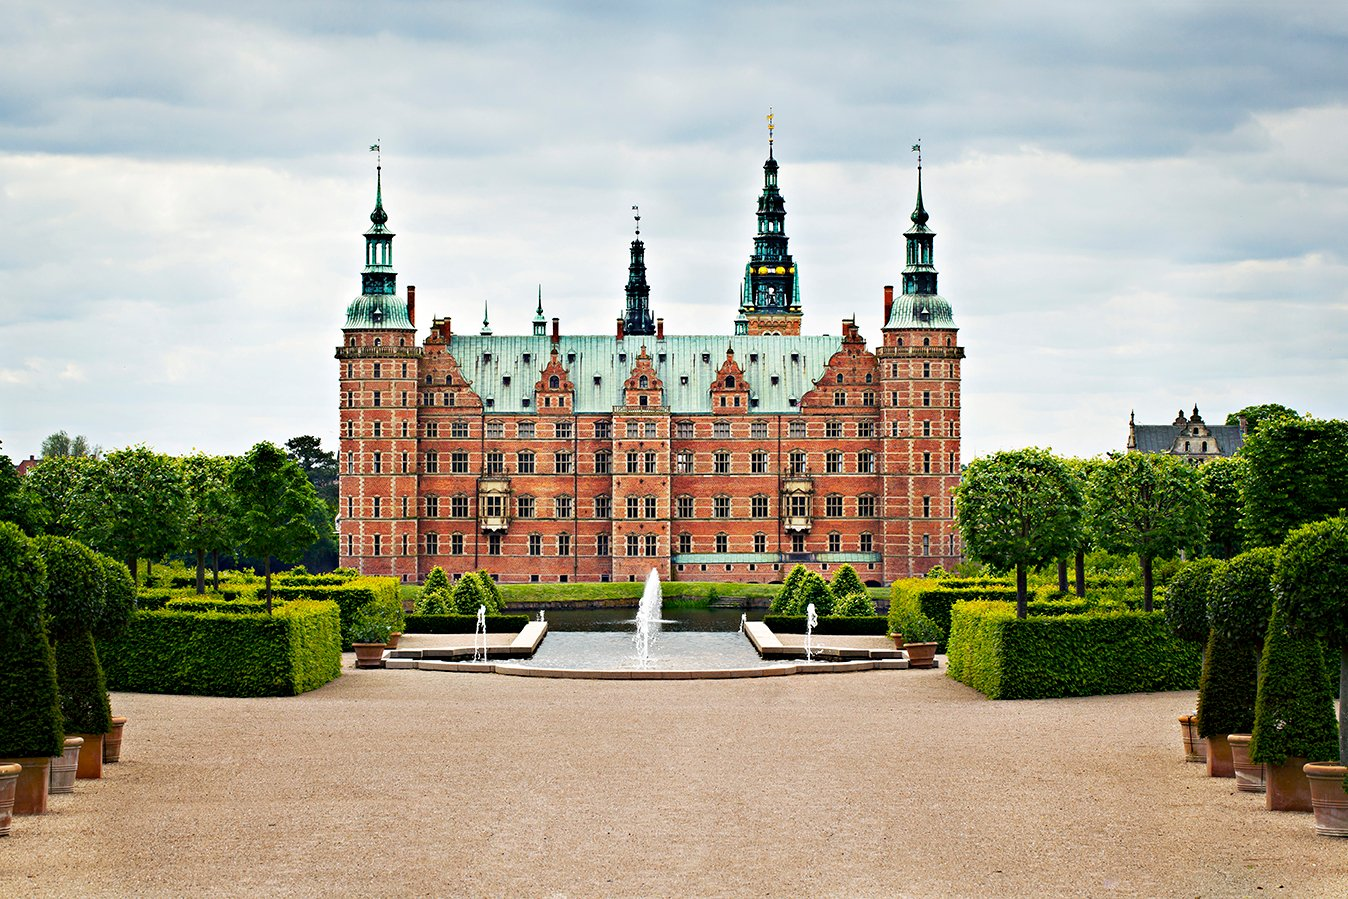 The museum of national history at frederiksborg castle copenhagen - All Photos 1 739